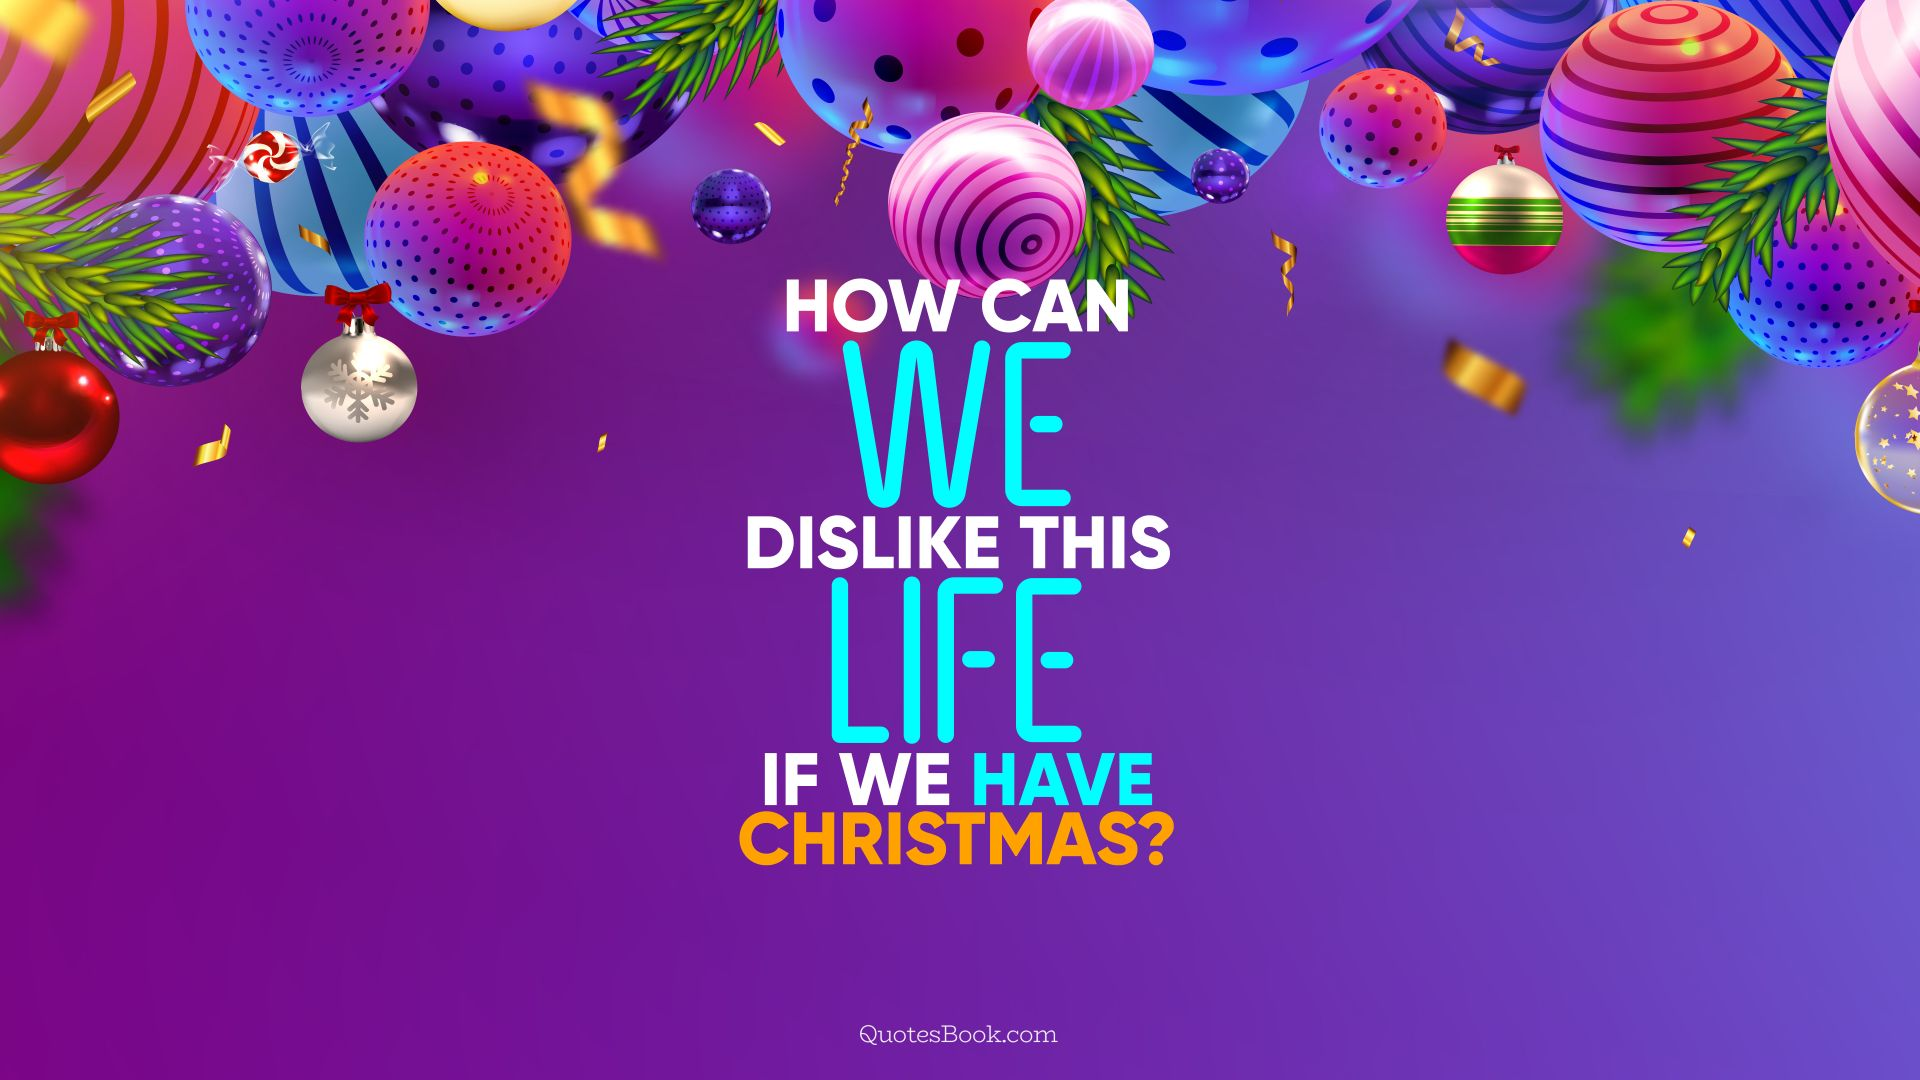 How can we dislike this life if we have Christmas?. - Quote by QuotesBook